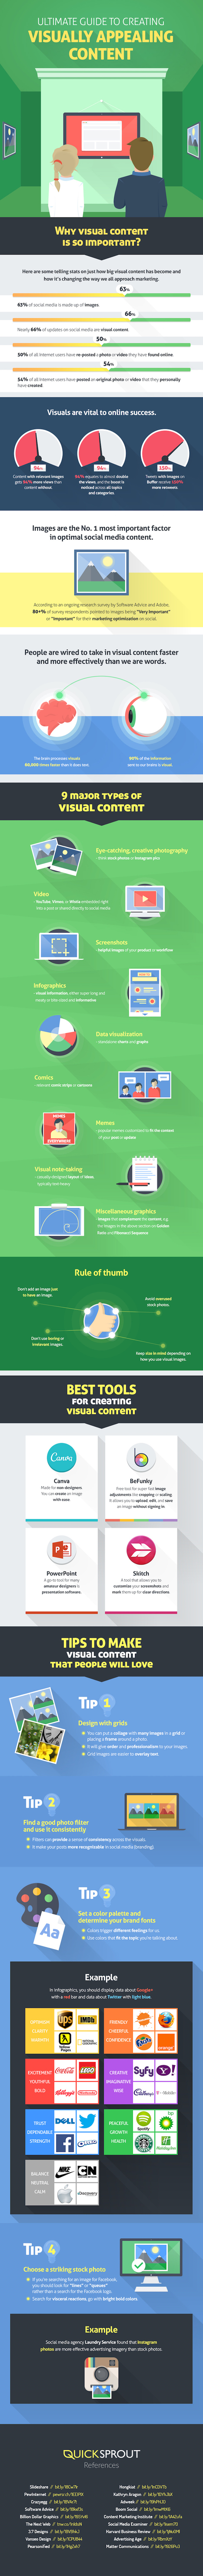 A Handy Little Guide to Creating Visual Content for Social Media #Infographic | MarketingHits | Scoop.it